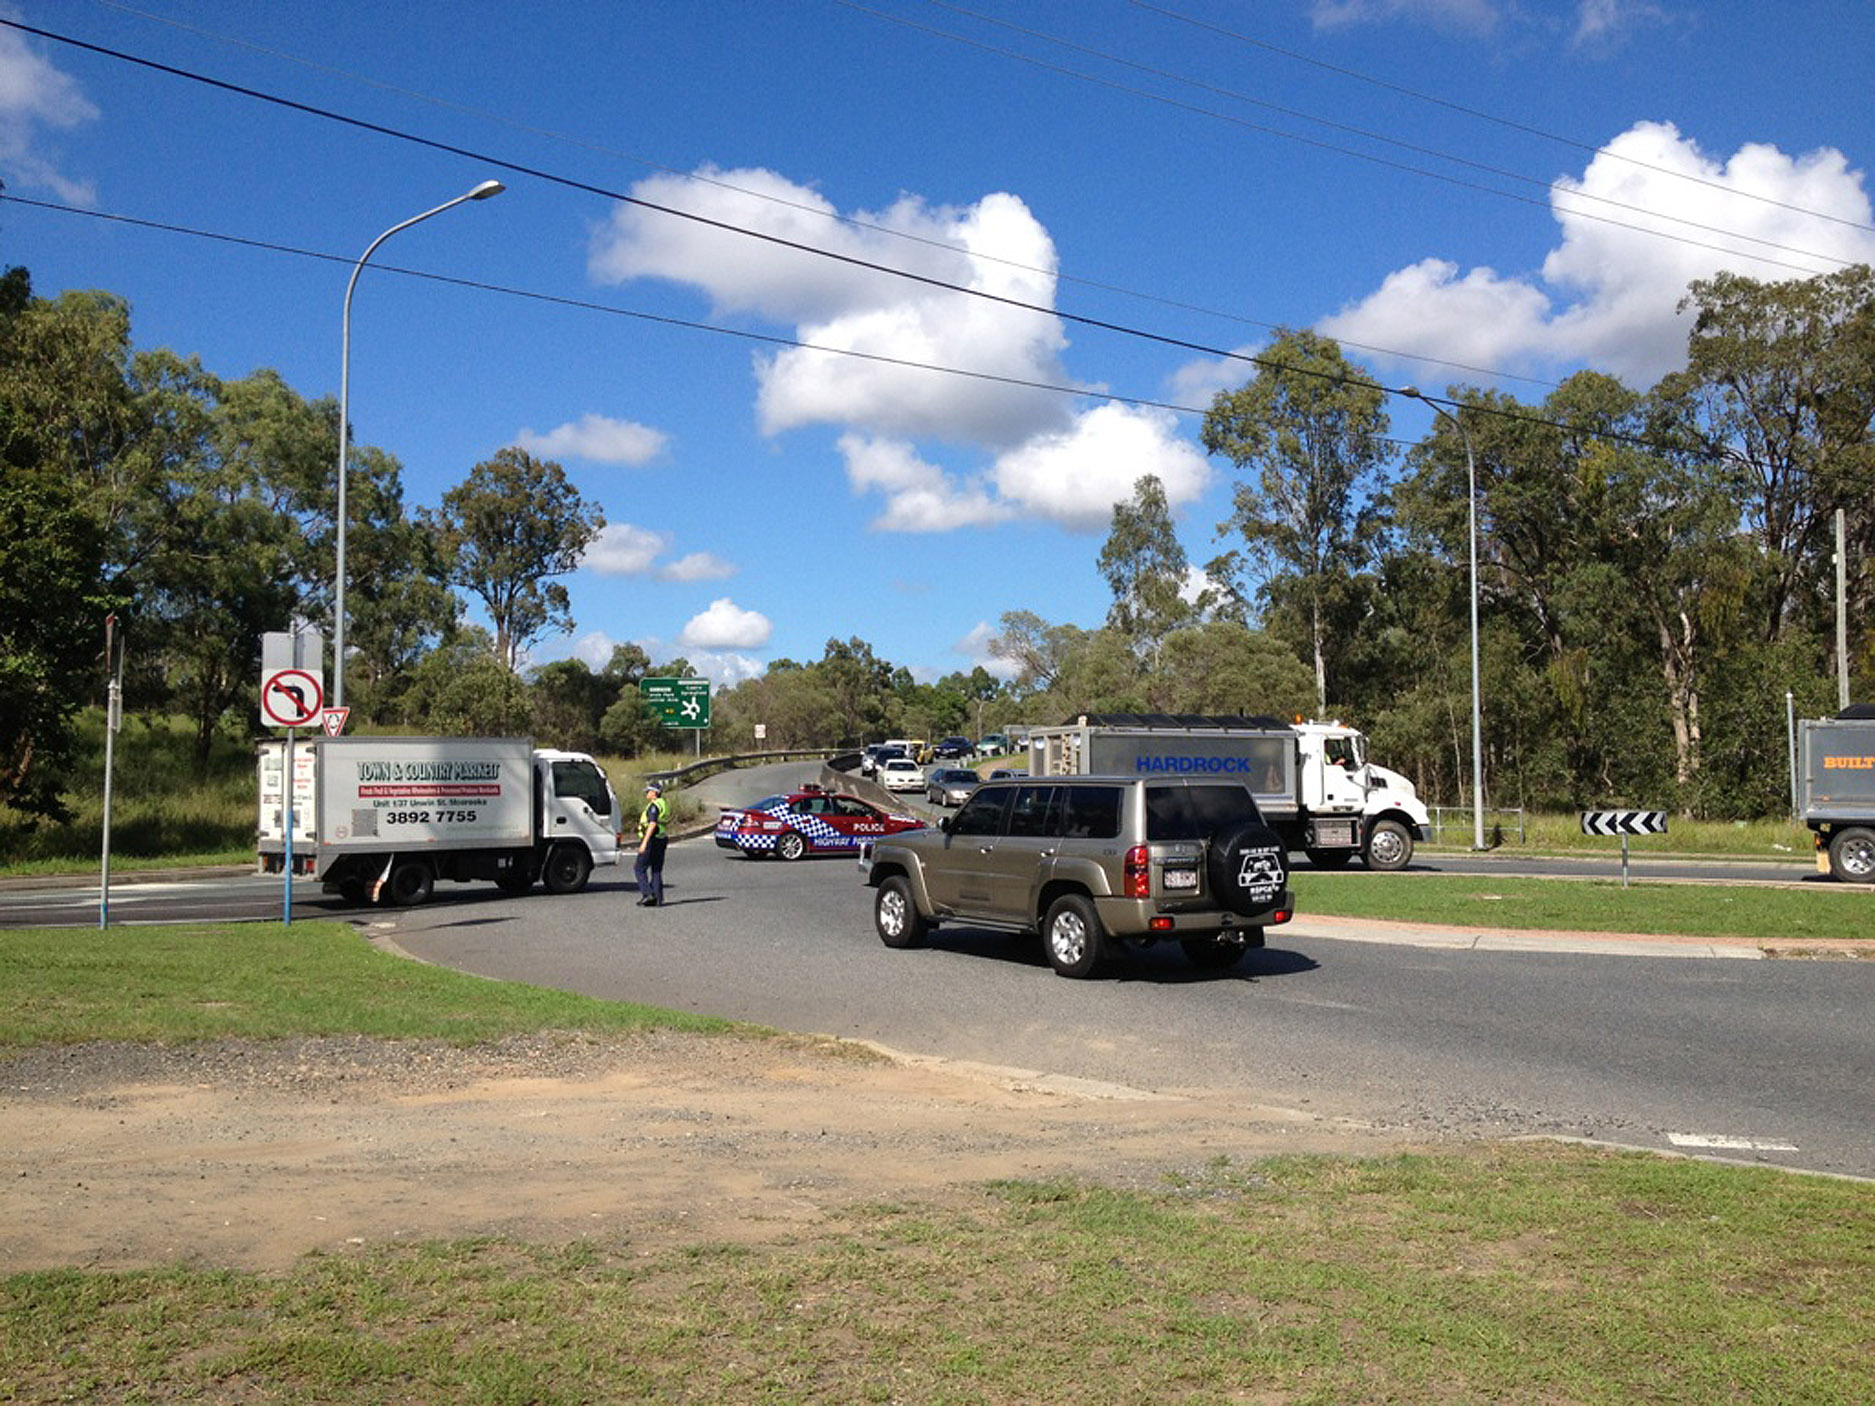 Police redirect traffic away from Mica Street (not visible) to the Formation Street roundabout at Carole Park.